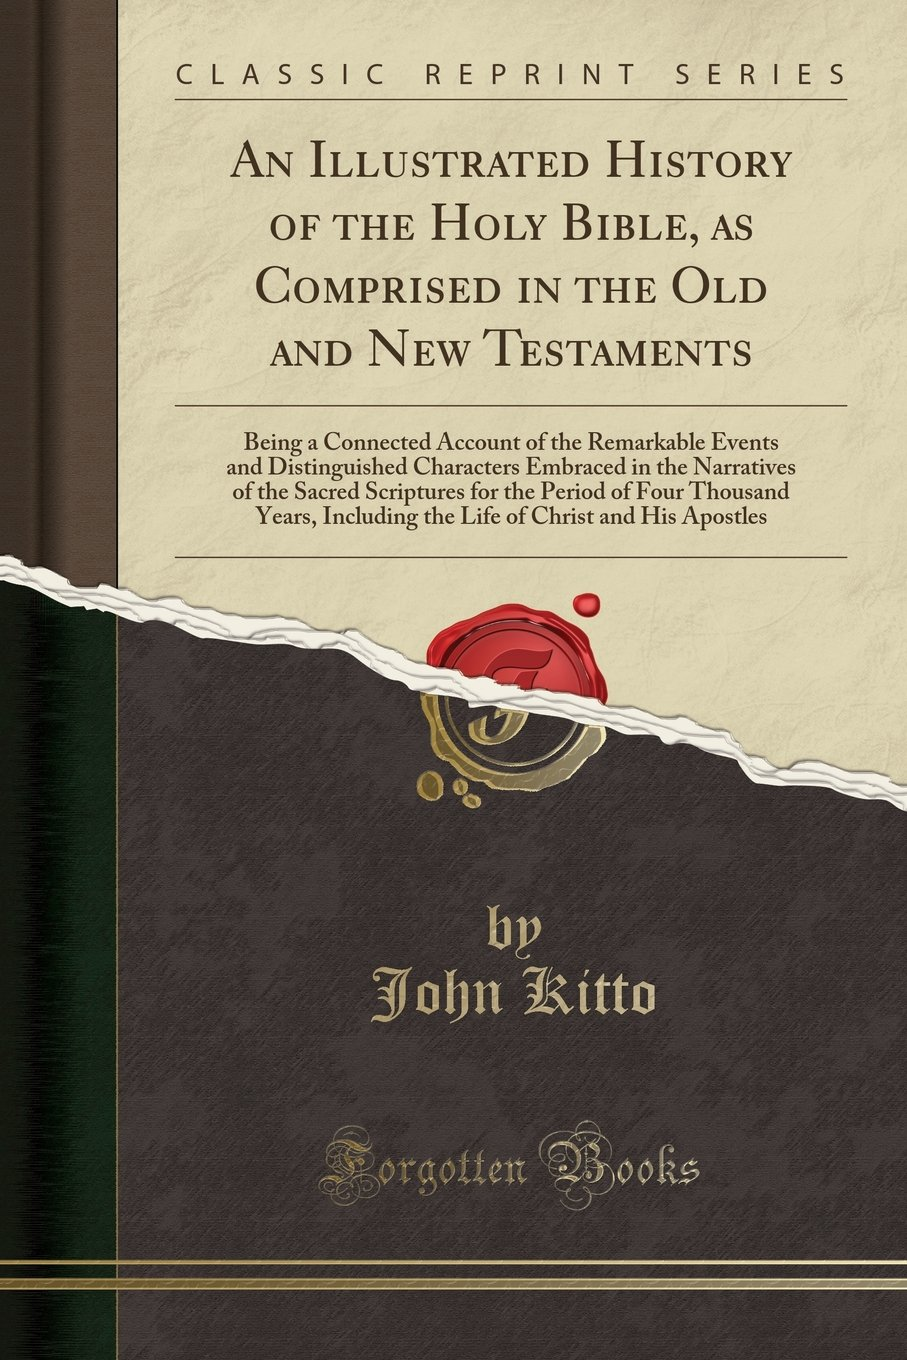 An Illustrated History of the Holy Bible, as Comprised in the Old and New Testaments: Being a Connected Account of the Remarkable Events and ... for the Period of Four Thousand Years ebook